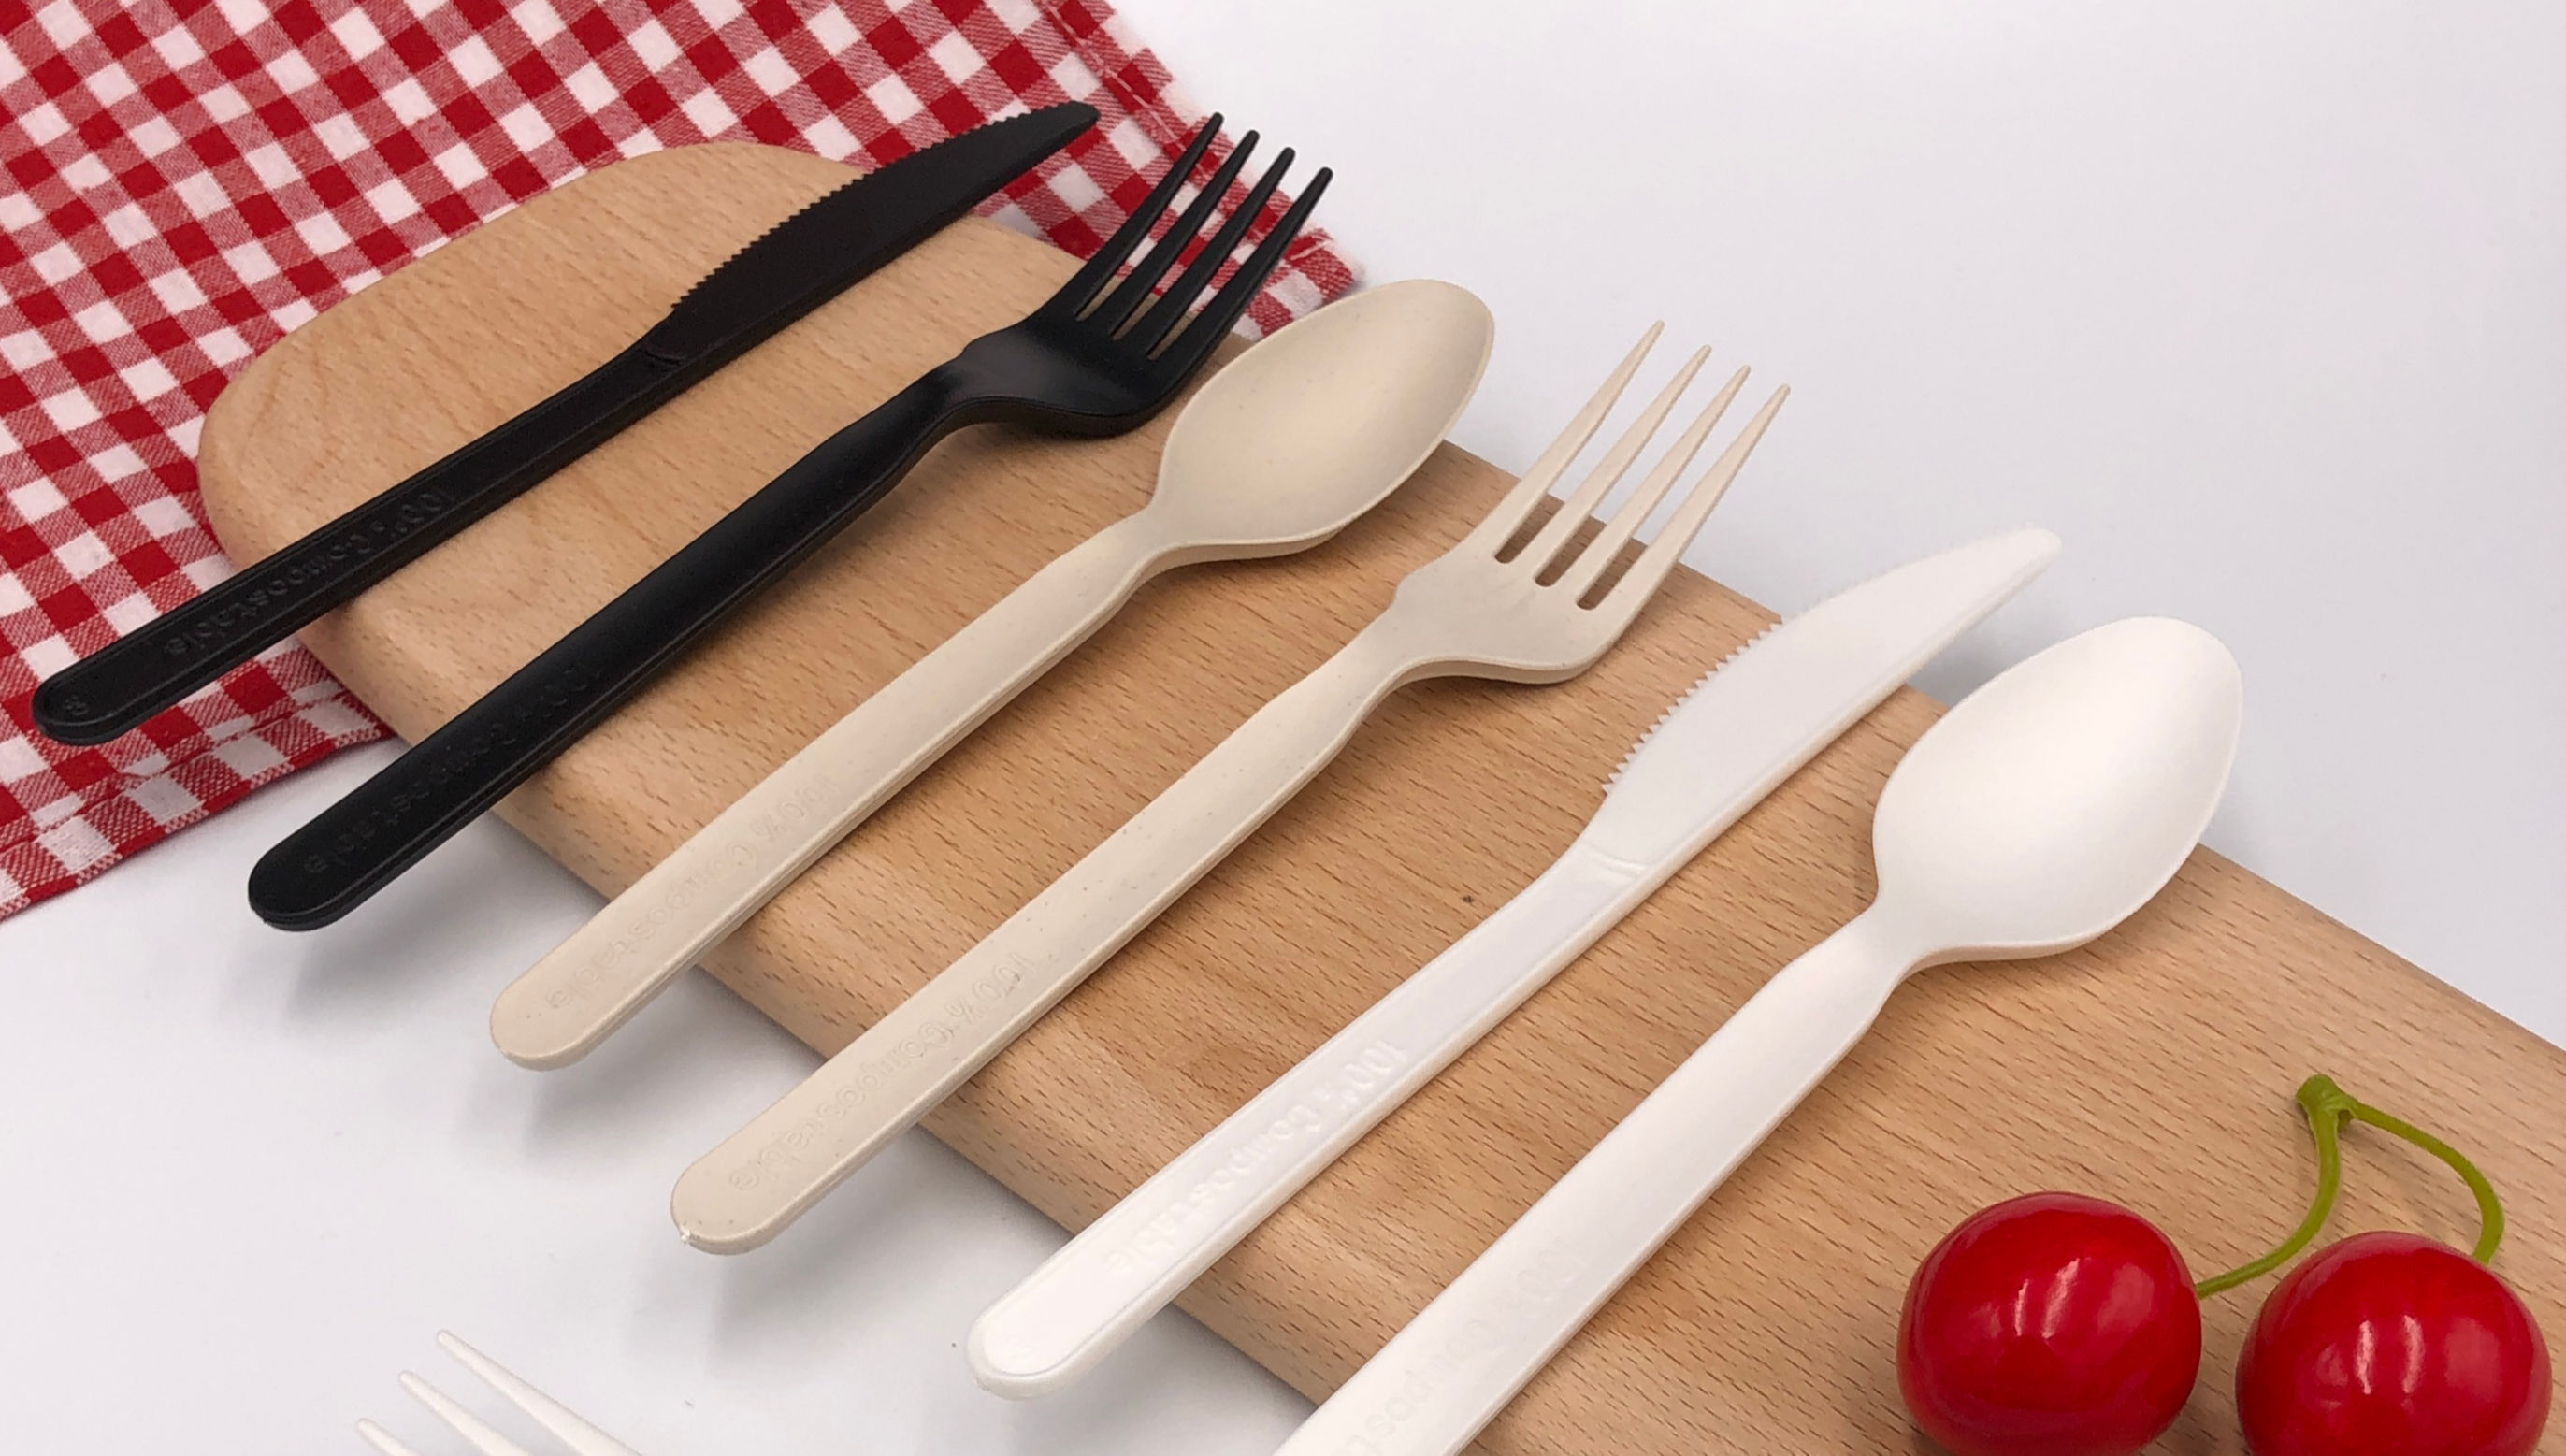 eco friendly recycling luxury knife fork napkin spoon travel set 7'' disposable 100% compostable CPLA biodegradable cutlery